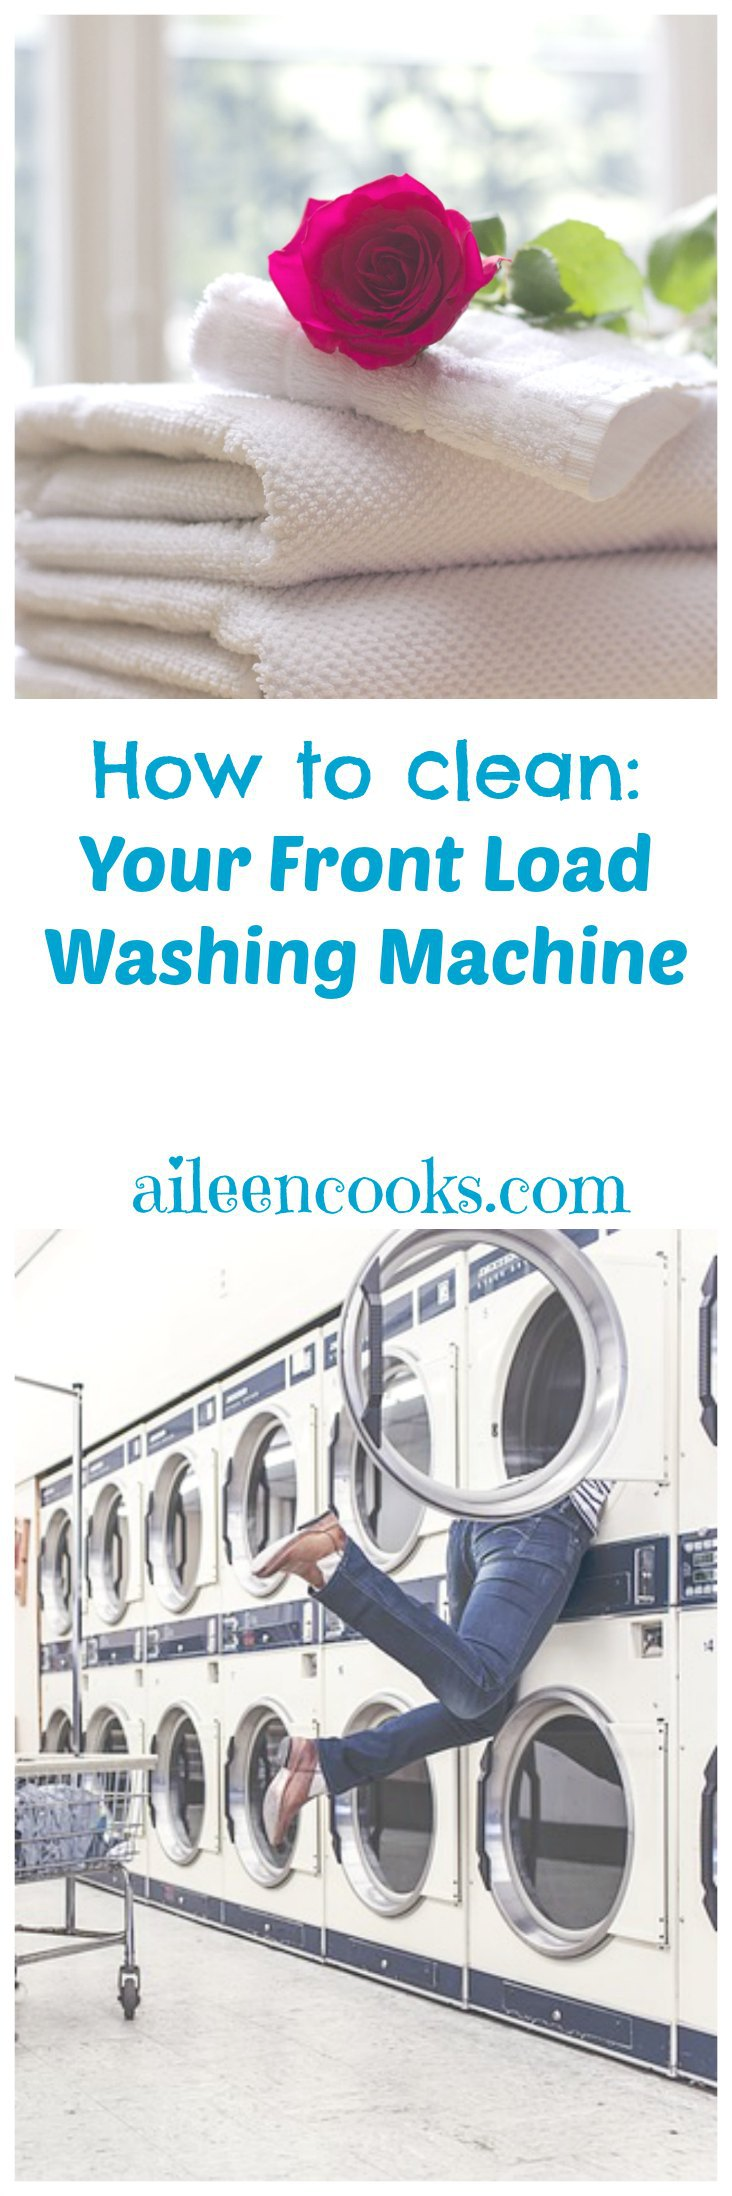 Cleaning Front Load Washing Machine How To Clean Your Front Load Washing Machine Aileen Cooks